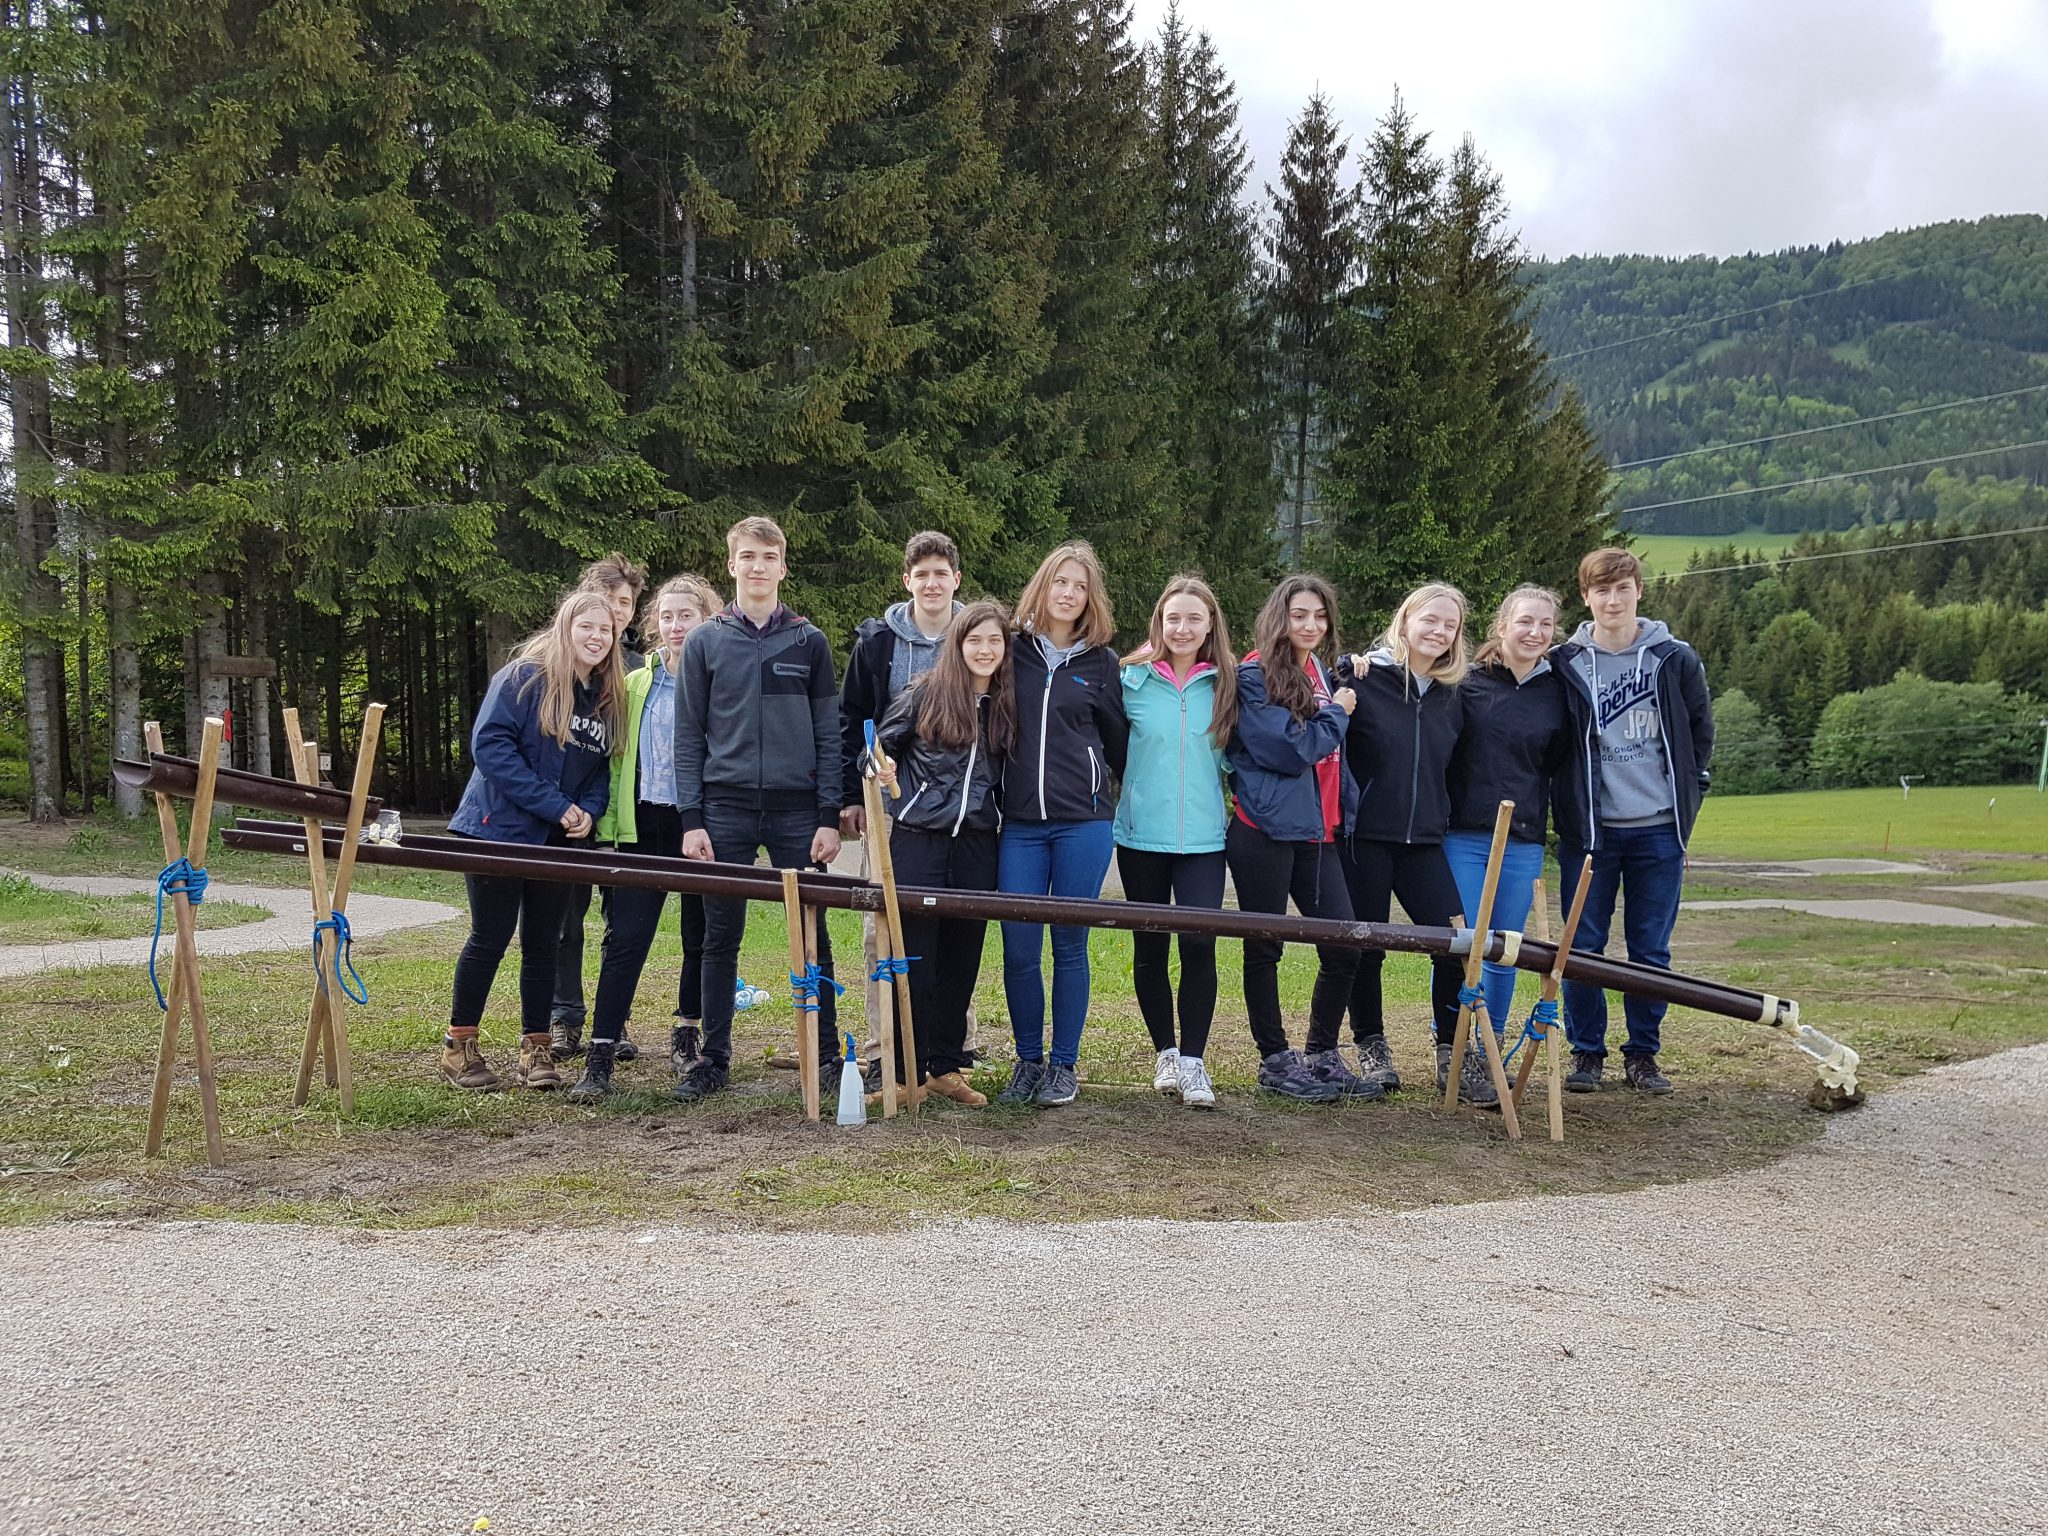 Outdoortage der 2HTA in Annaberg (14.-17. Mai 2018)